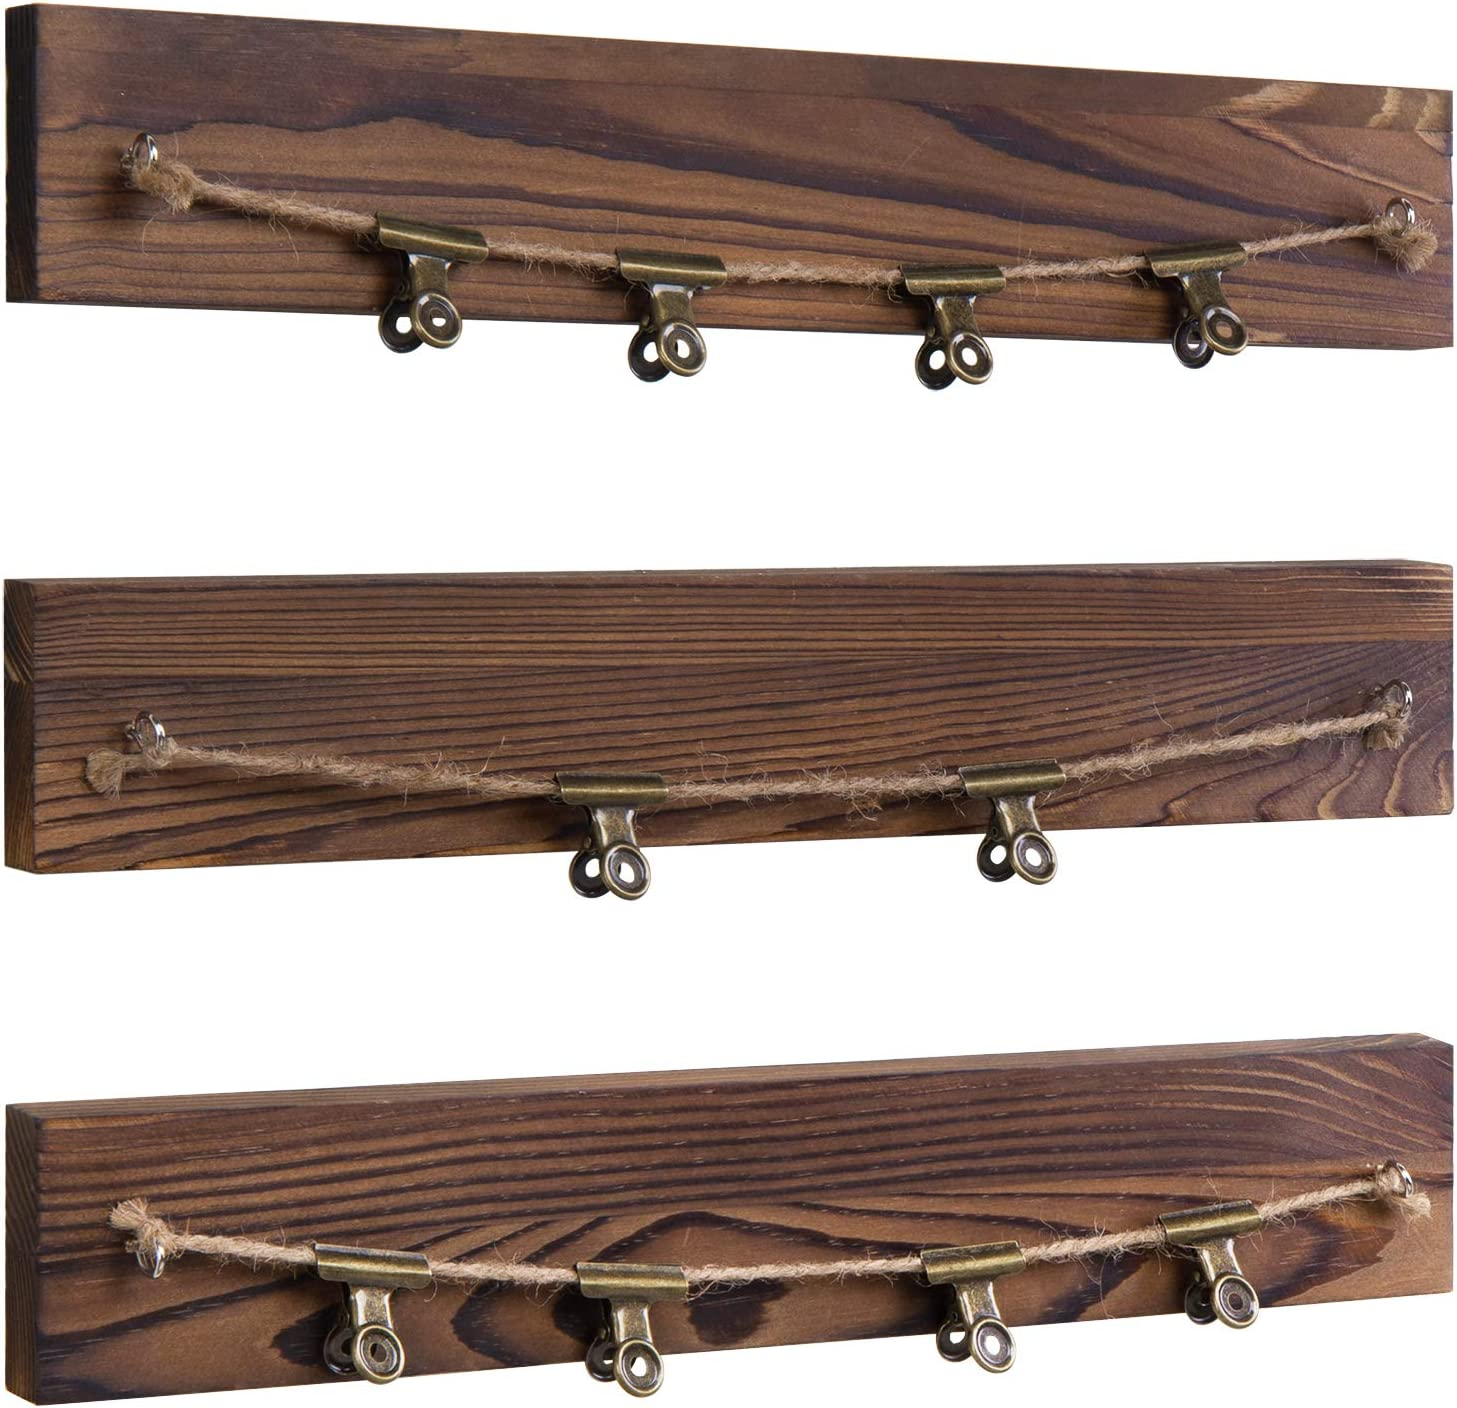 MyGift Burnt Dark Brown Wood /& Rope Photo Hangers with 10 Vintage Clips Set of 3